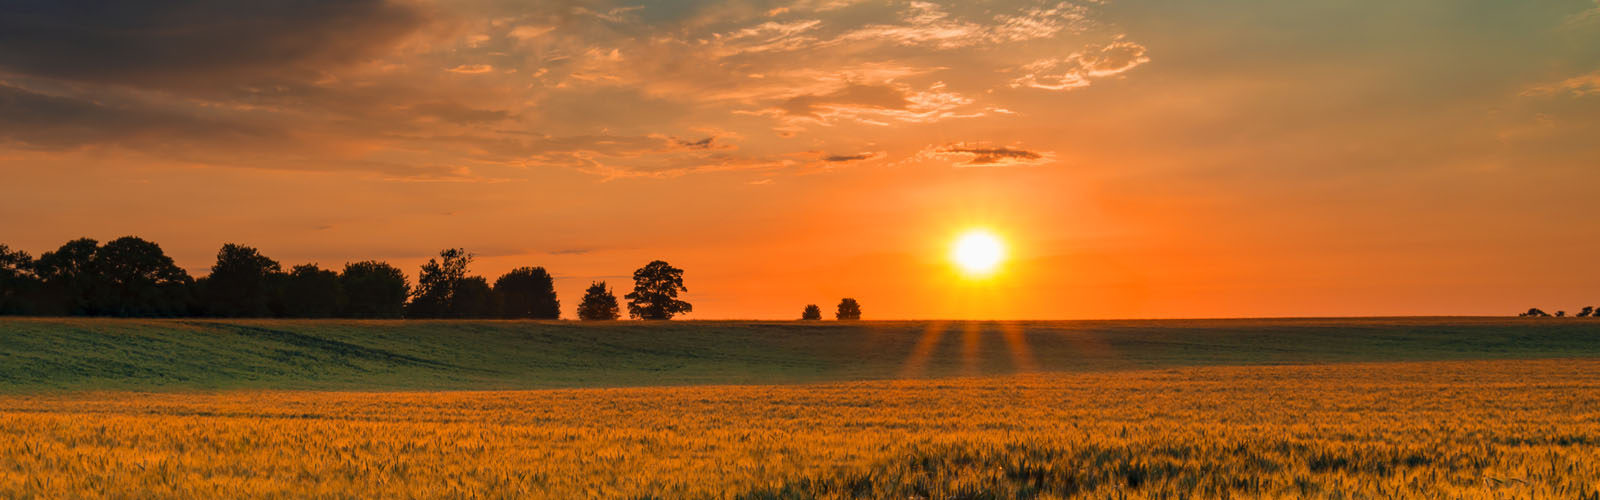 Sunset over a wheat field in Northamptonshire.